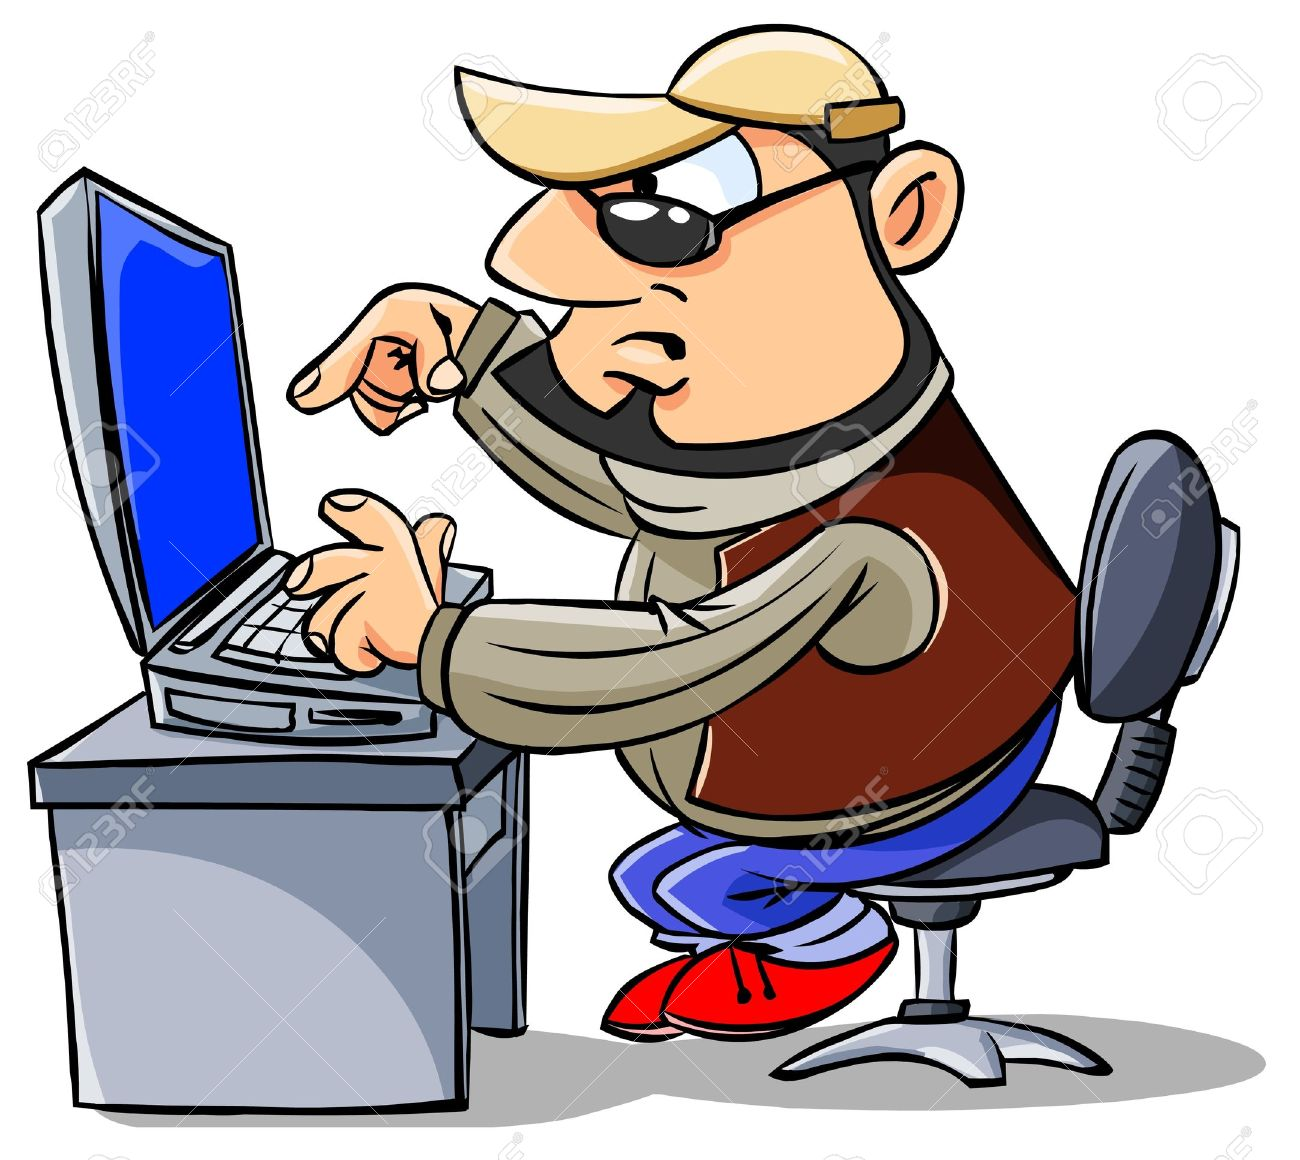 Person Typing On Keyboard Clipart.